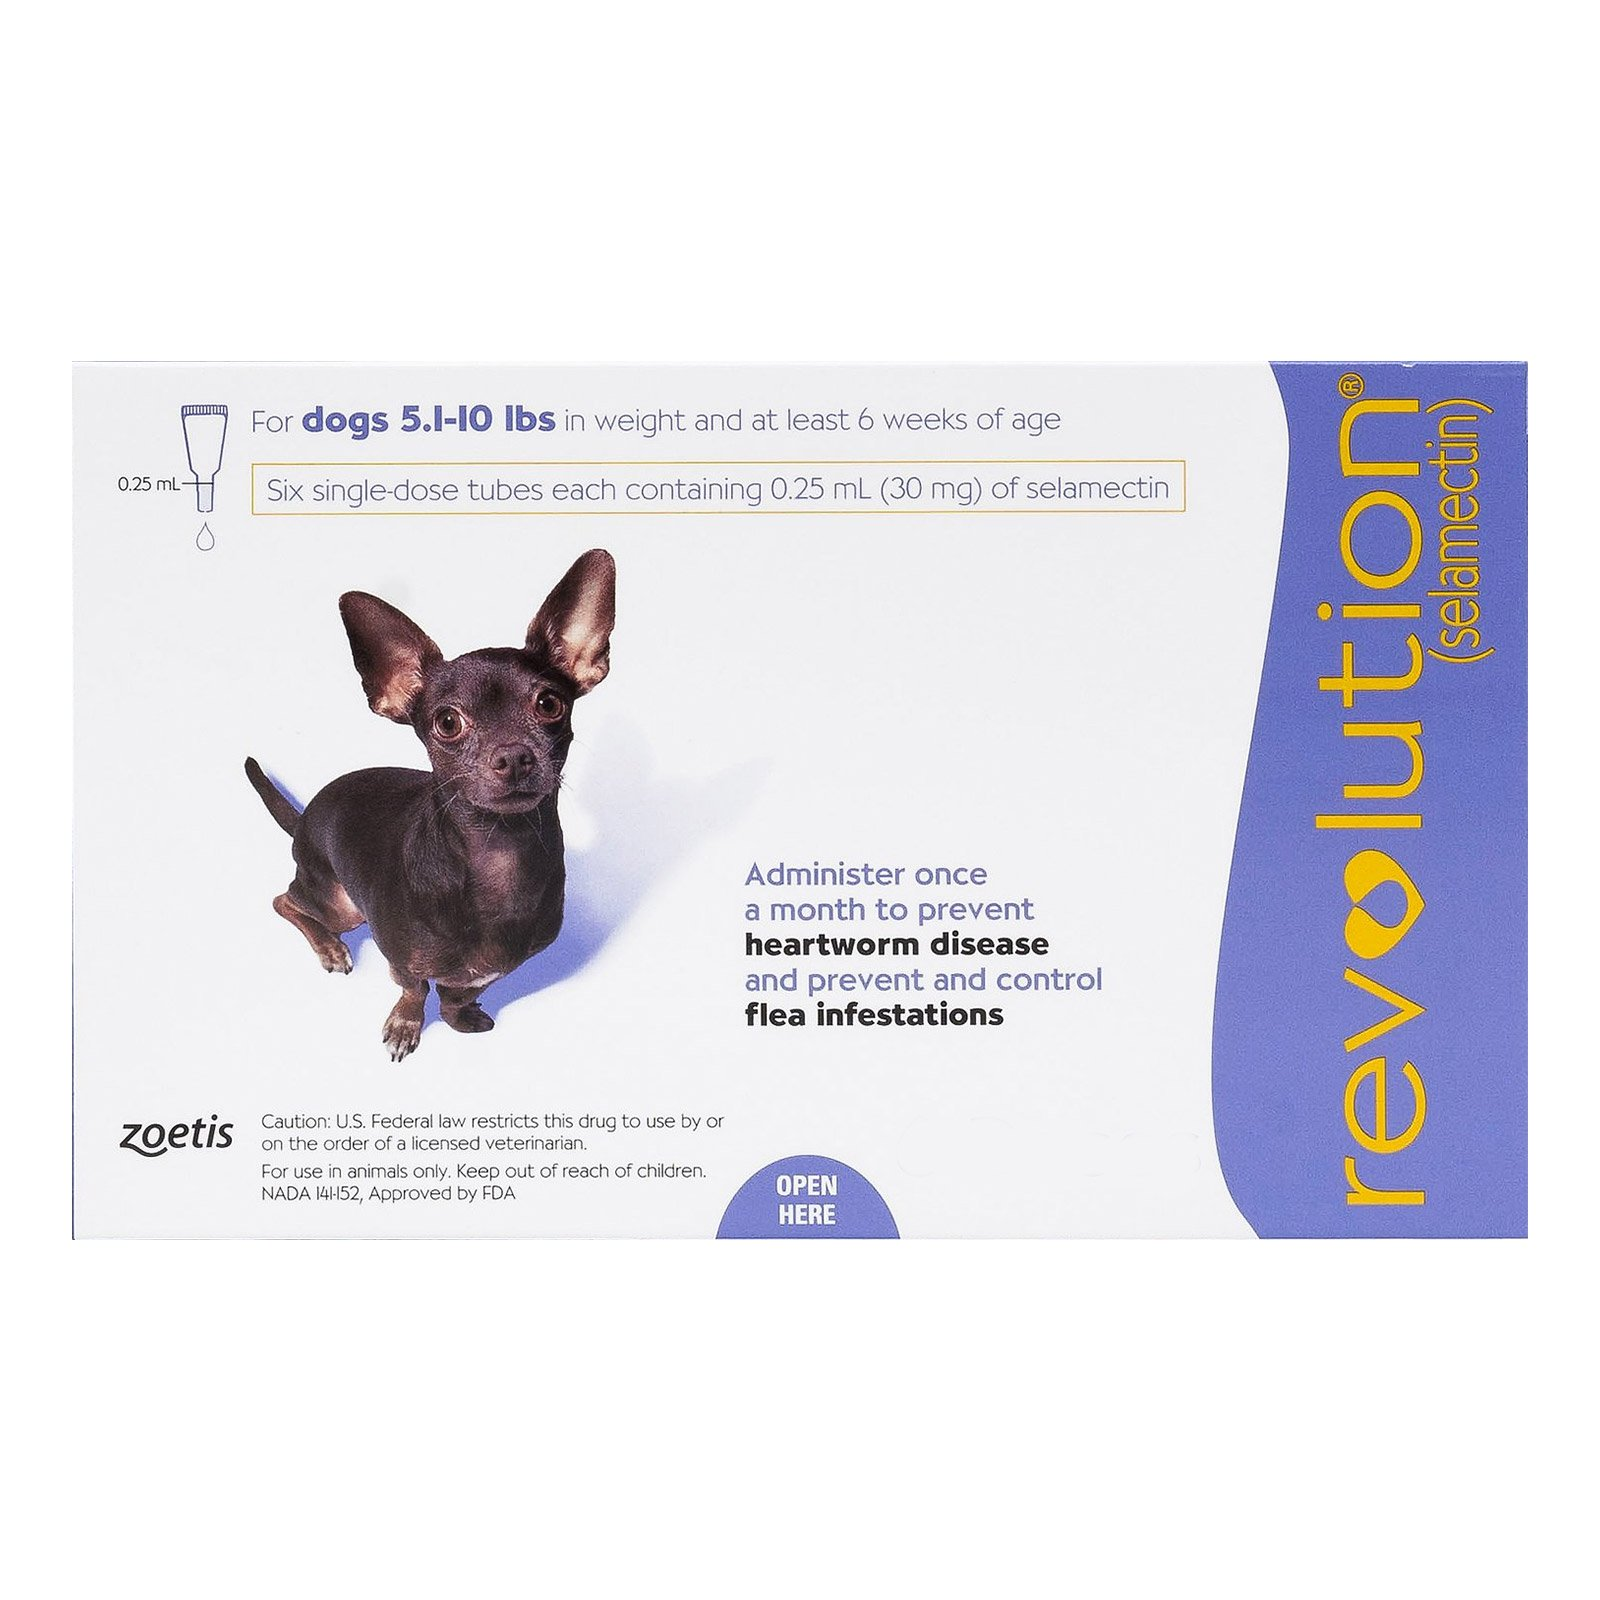 Revolution for Very Small Dogs 5.1-10 lbs (Purple)